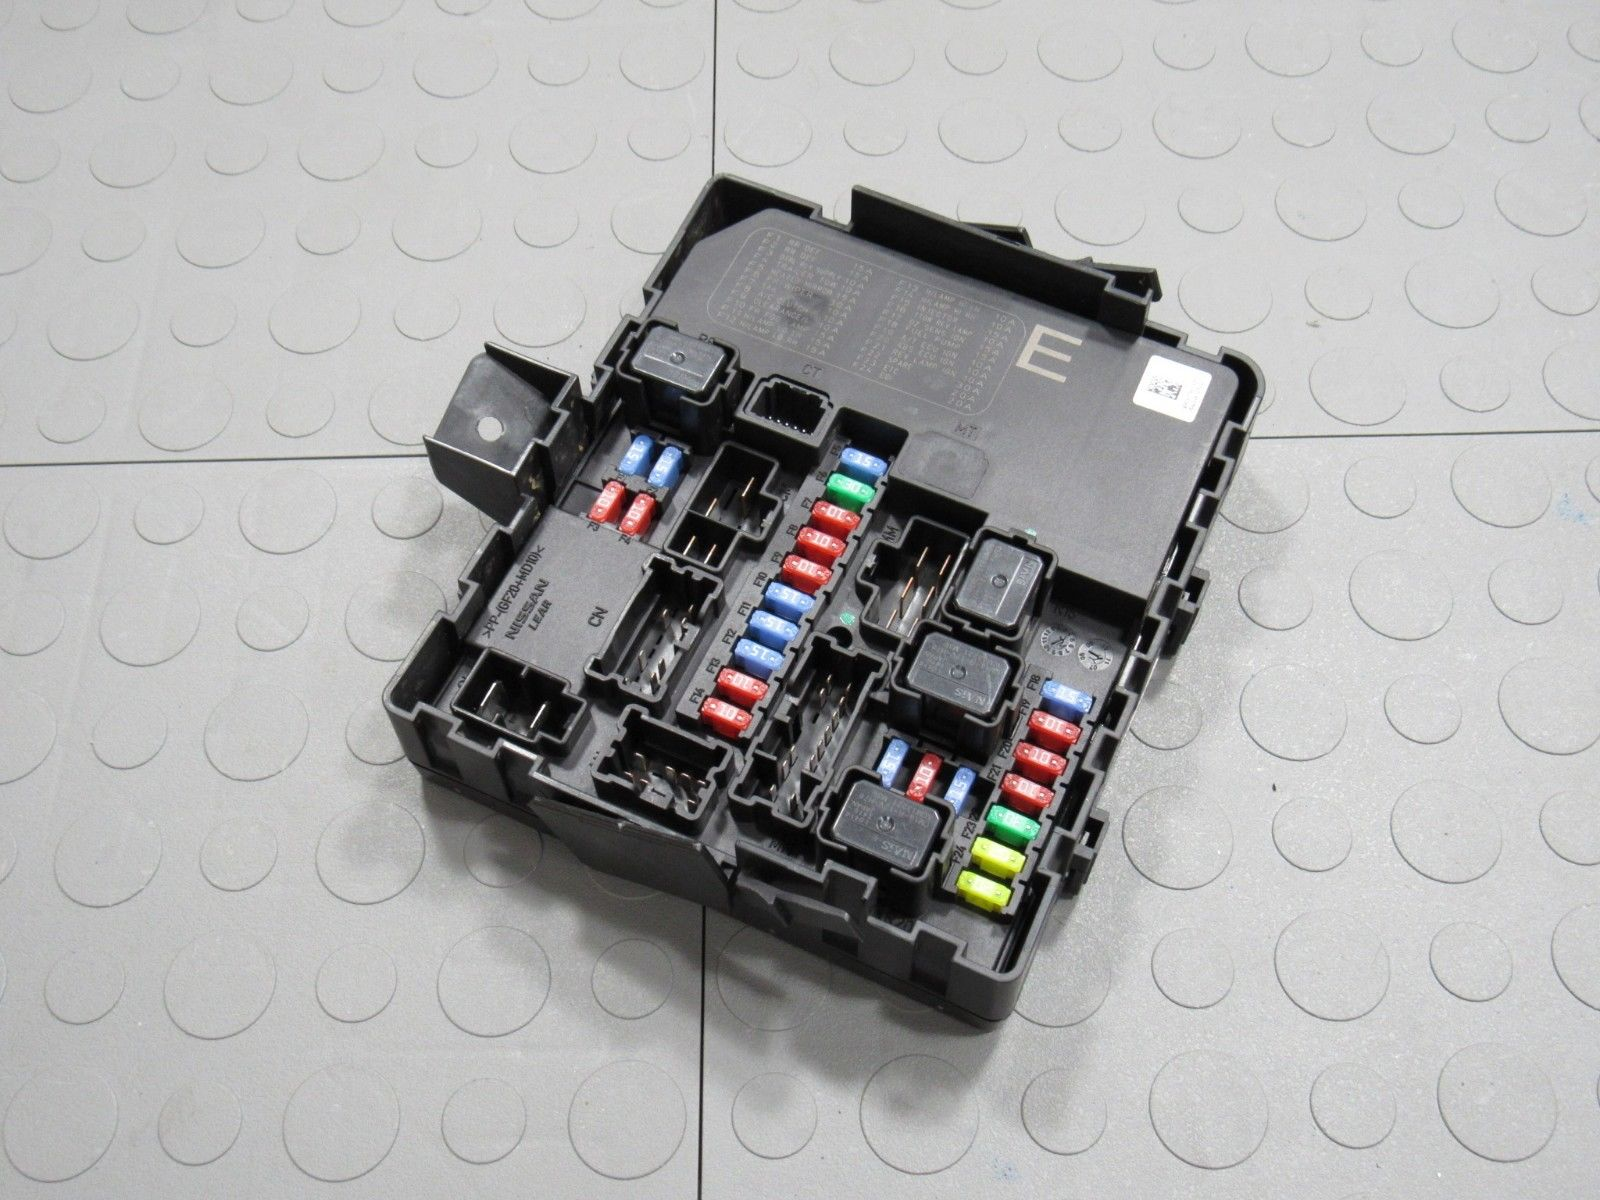 Frontier Fuse Box Detailed Schematics Diagram 2010 Charger Location On Body 10 Titan Armada Xterra Ipdm Bcm Module 284b7 Nissan Crew Cab